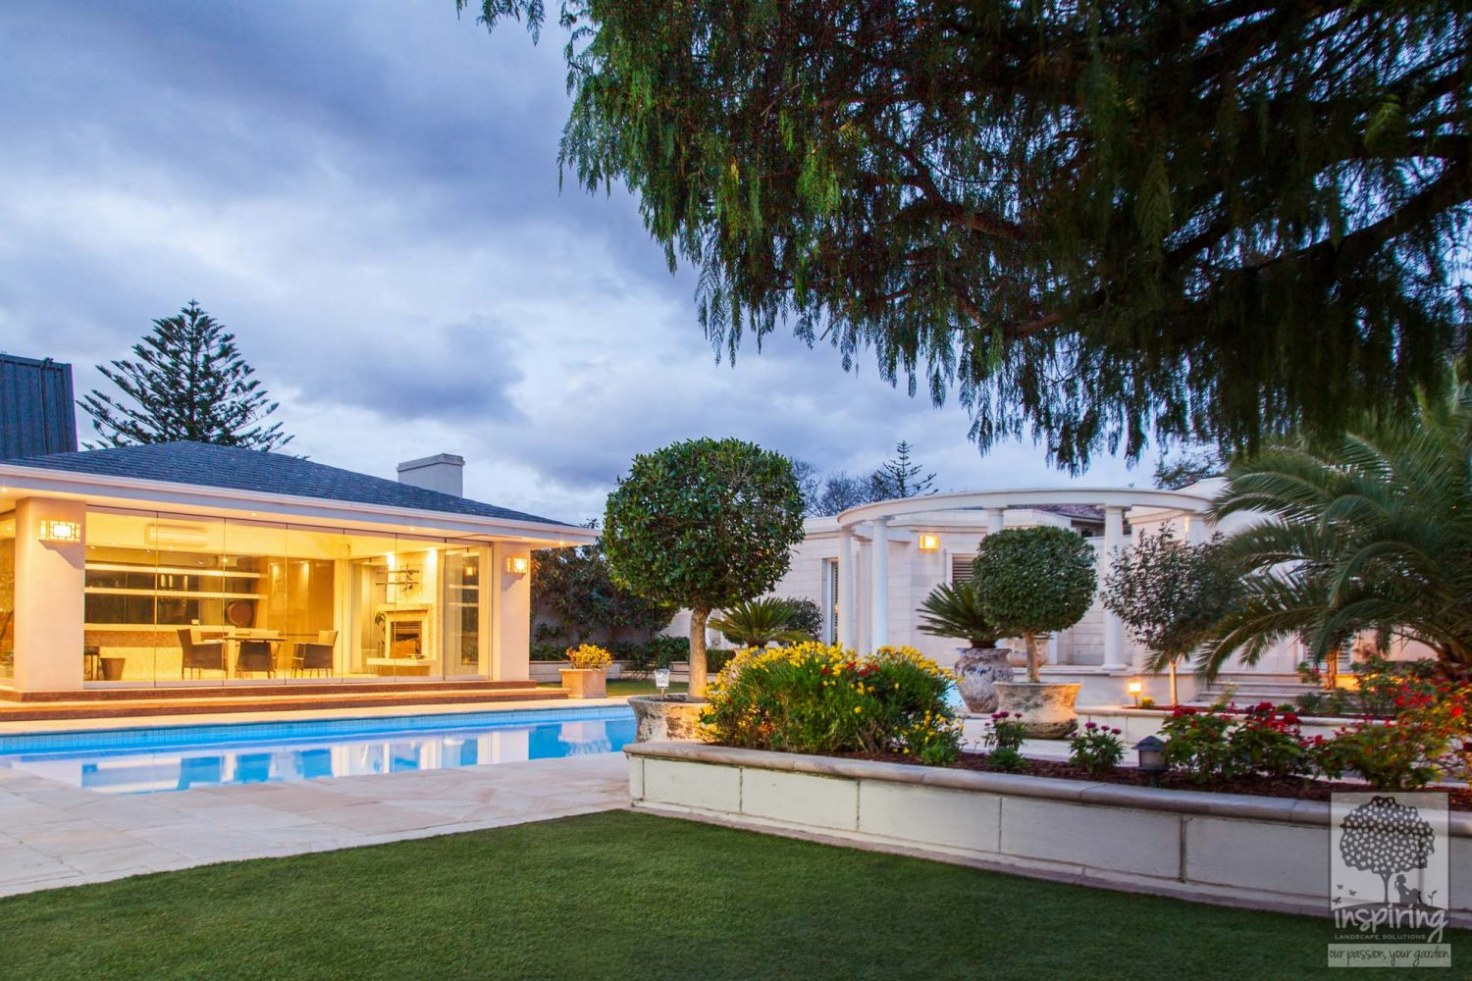 Melbourne garden rejuvenation on a Brighton property by Inspiring Landscape Solutions